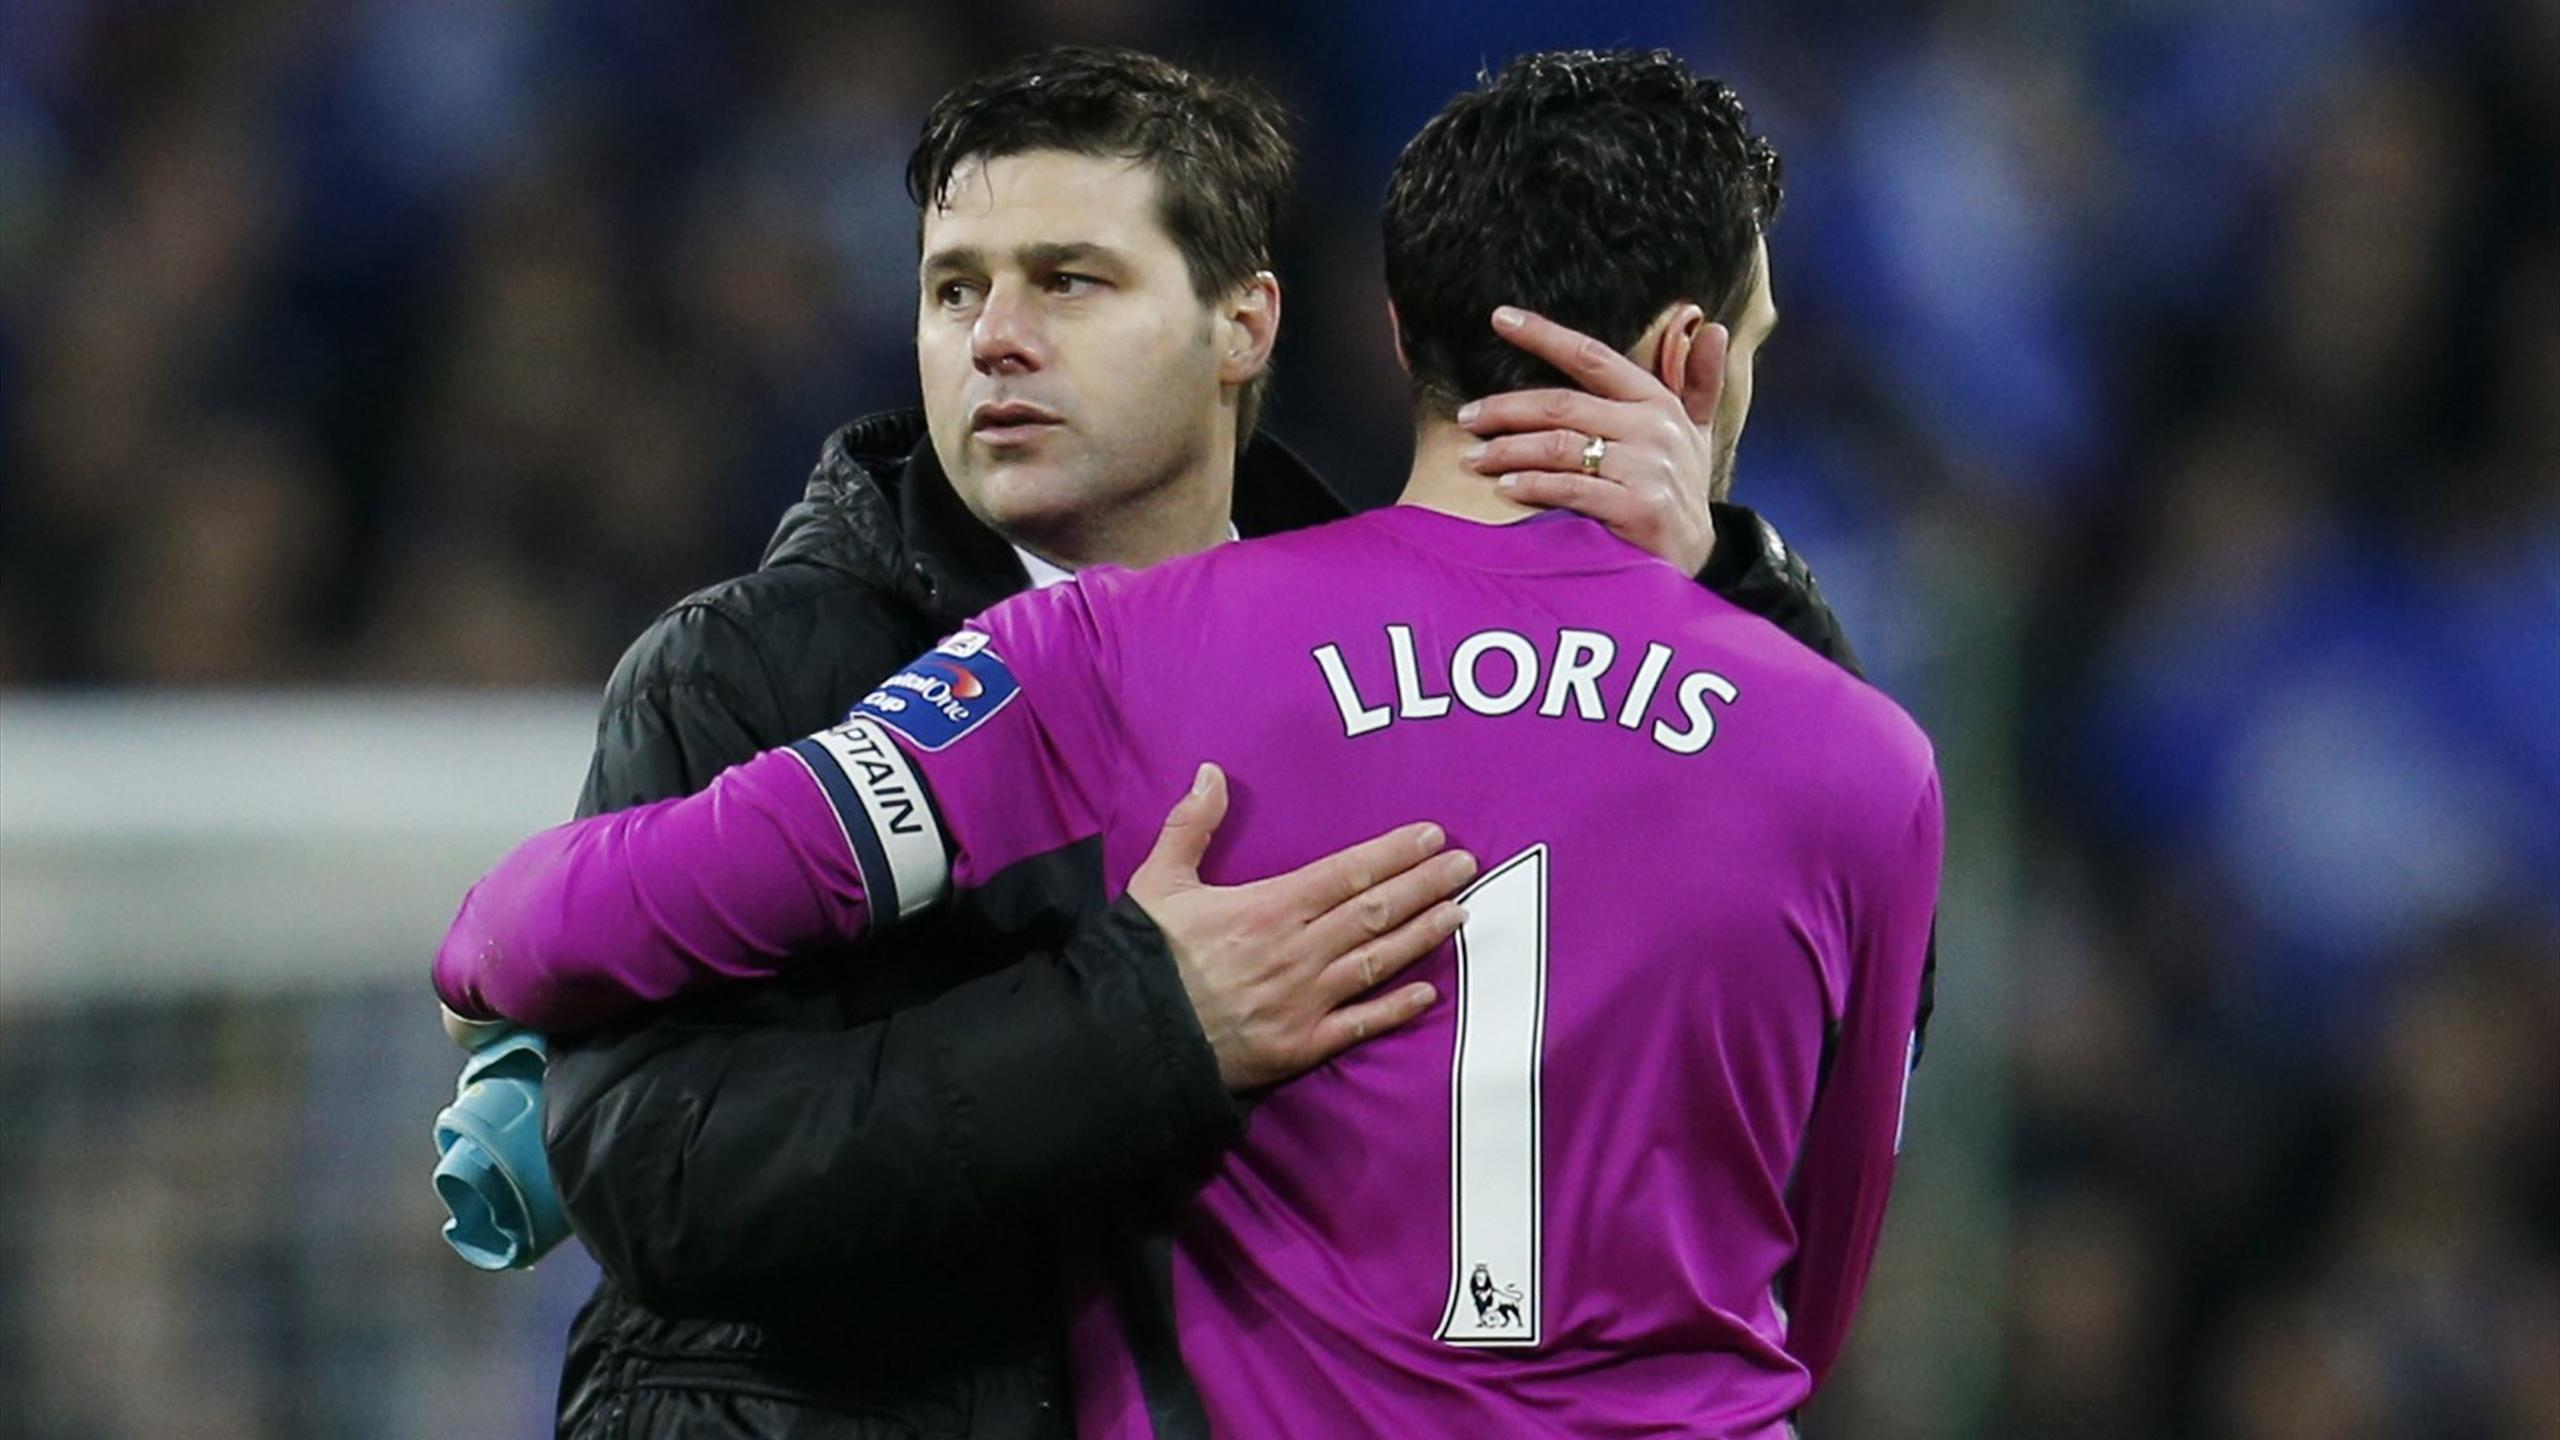 Tottenham manager Mauricio Pochettino and goalkeeper Hugo Lloris